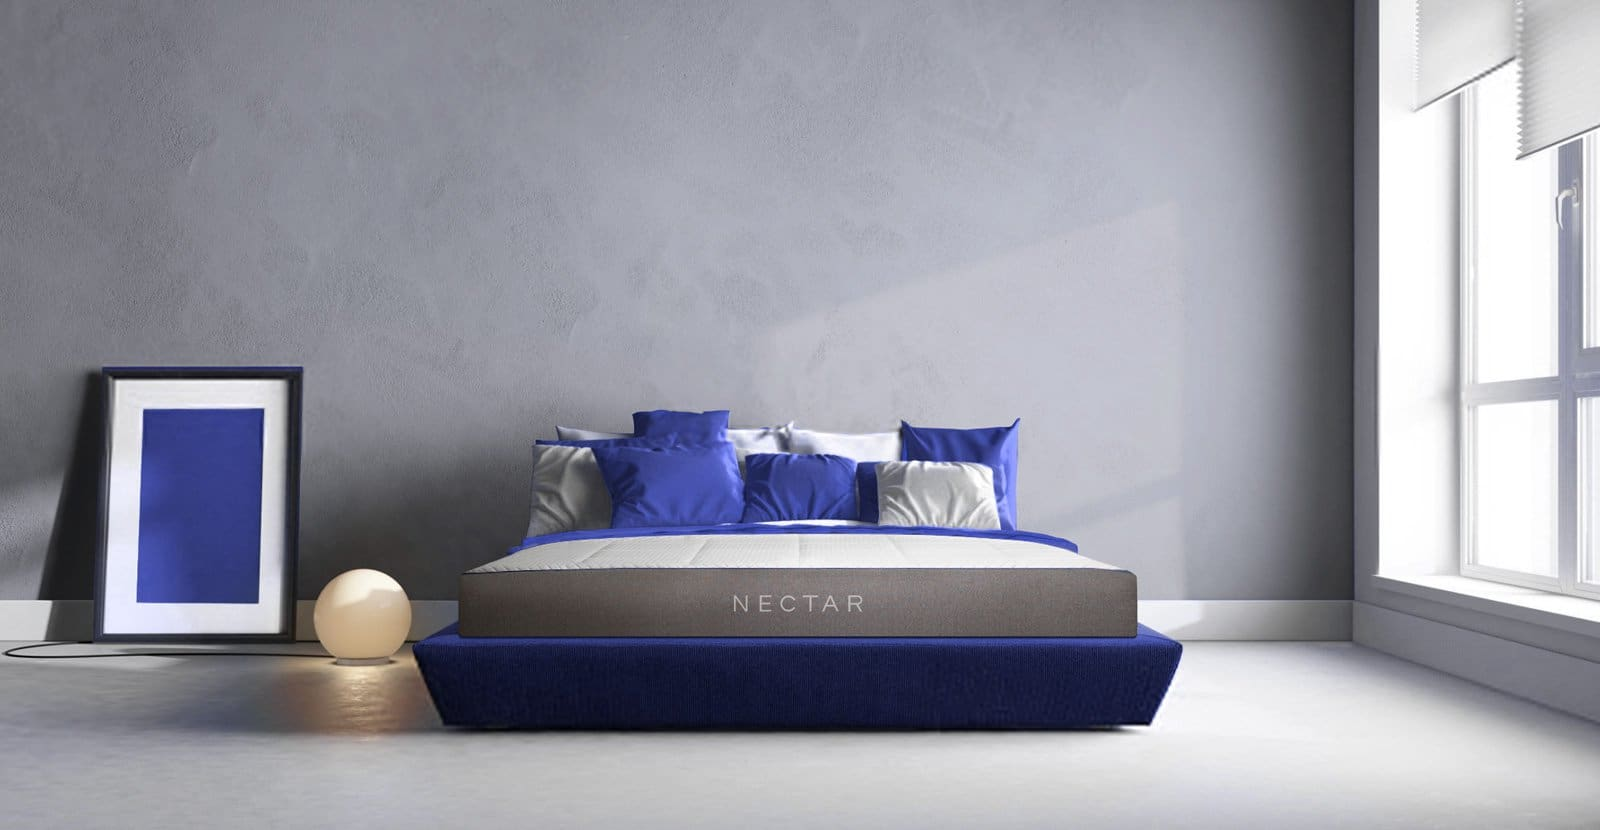 Nectar Mattress Review And Buying Guide by www.snoremagazine.com